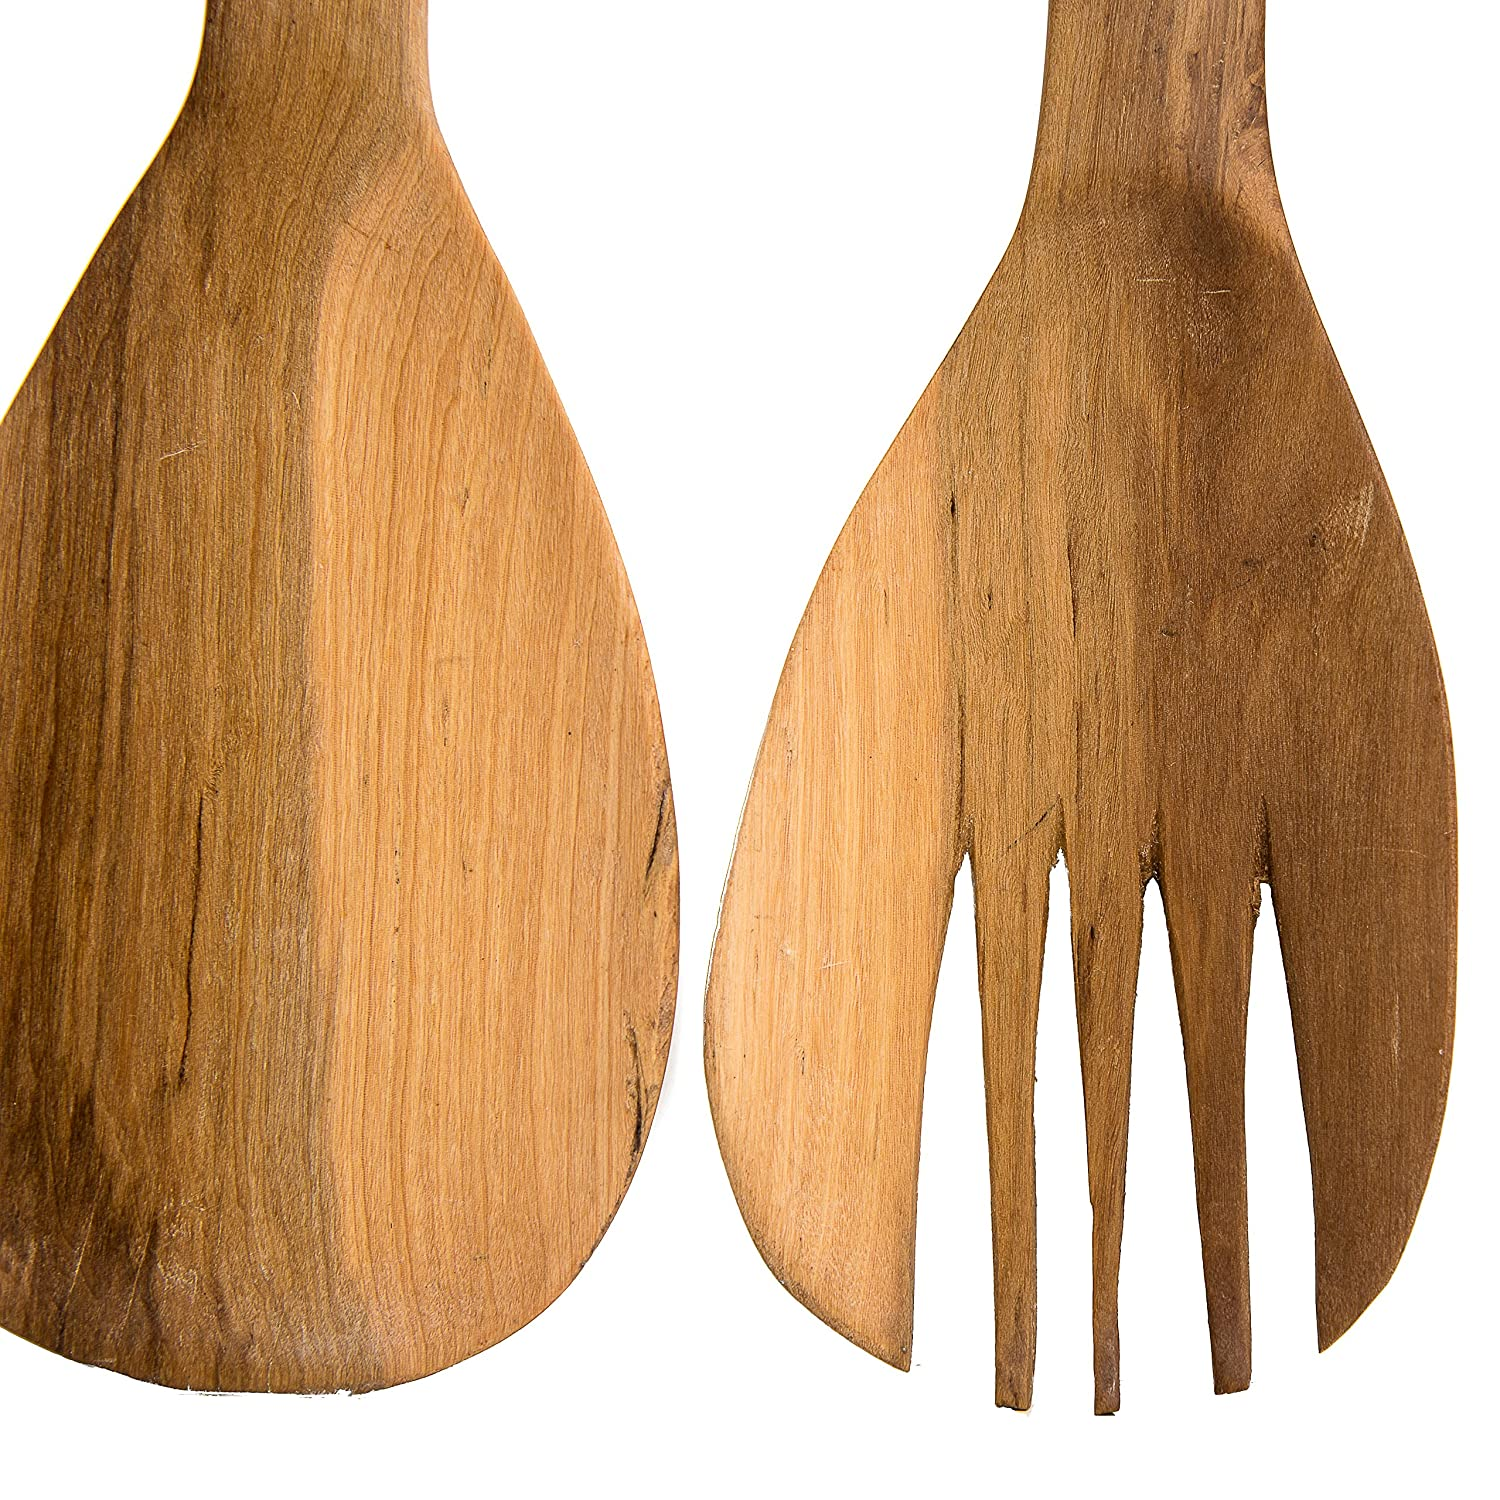 Handmade Large Teak Wood Salad Server Set 2 Piece Wooden Fair Trade Giraffe Salad Servers in an Eco-friendly Gift Bag Uniquely Designed /& Skilfully Crafted in Kenya by African Inspired Design